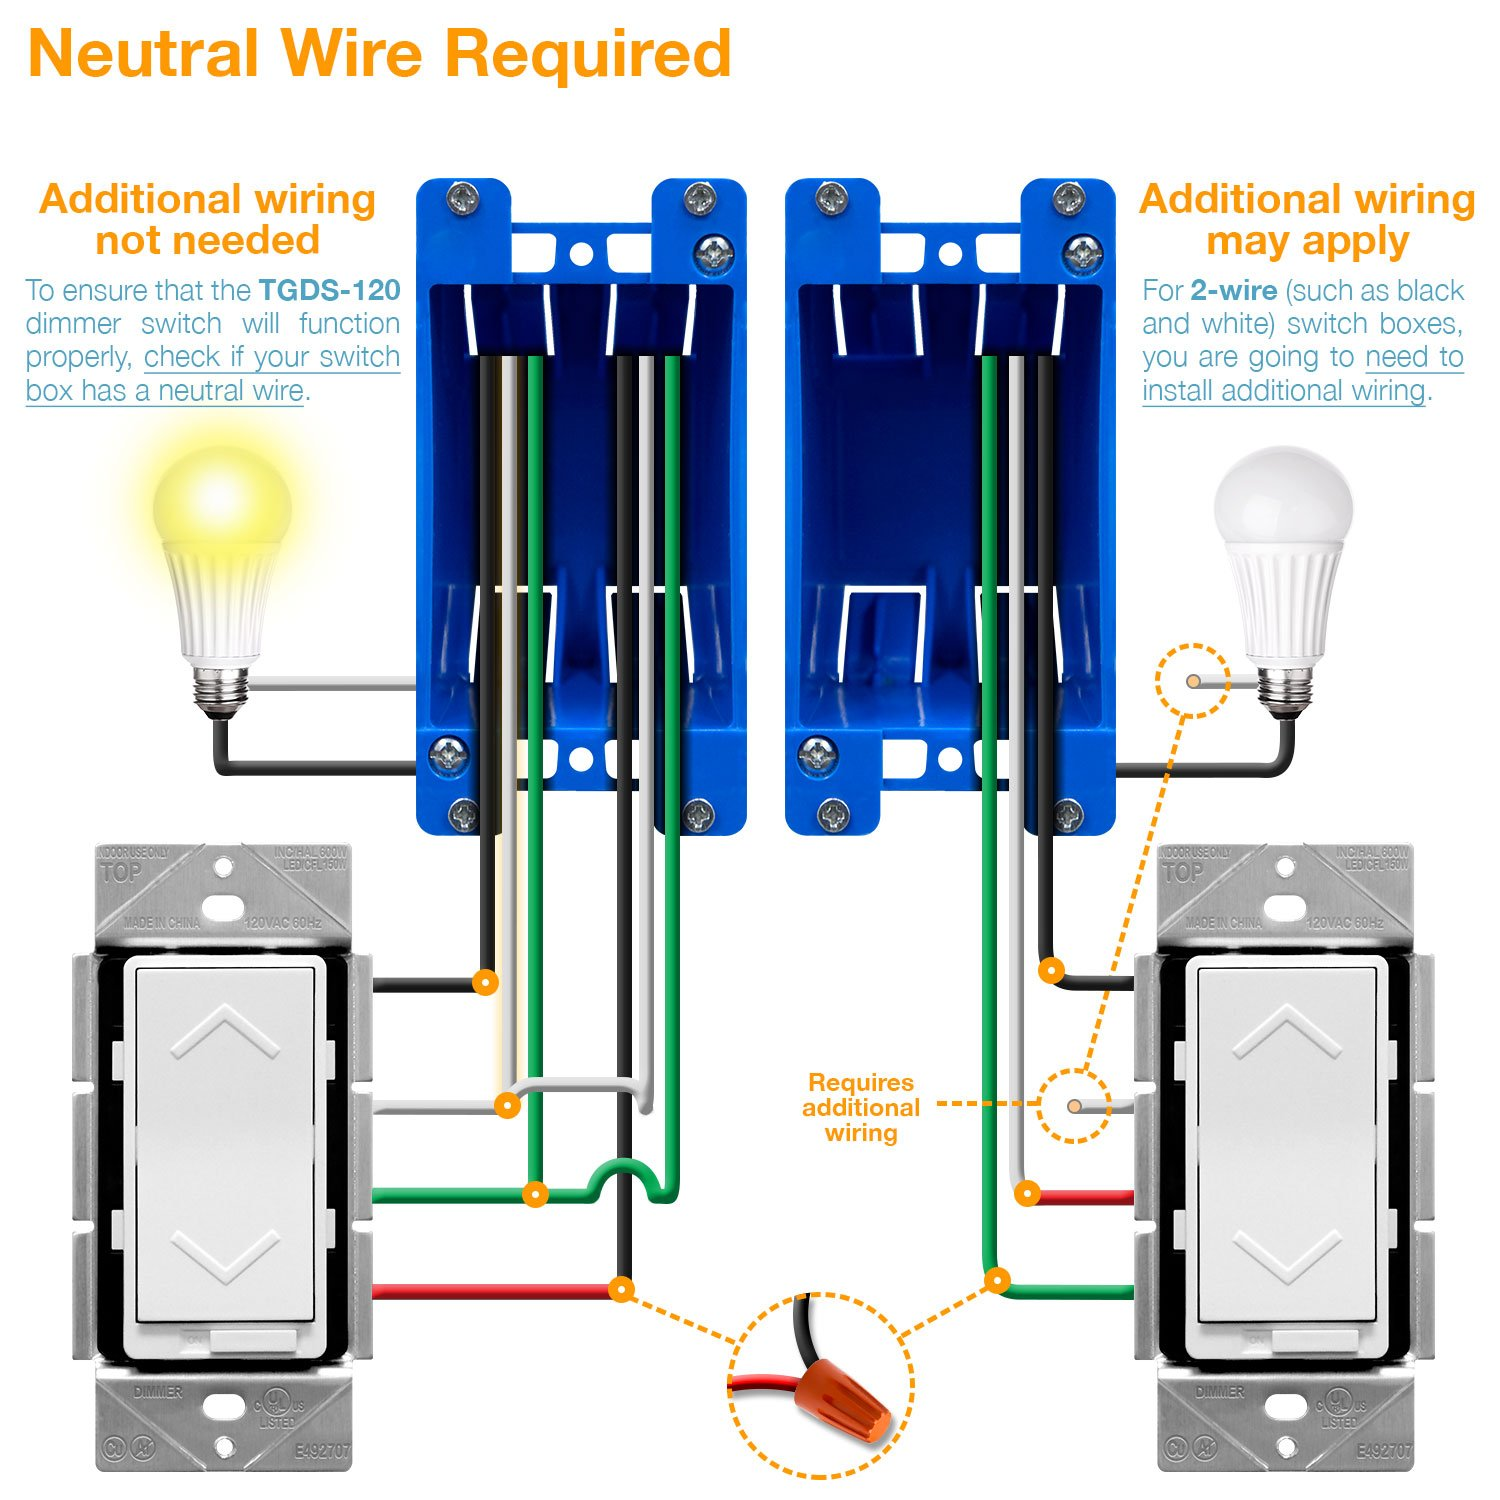 Topgreener Dimmer Switch Tgds 120 150w Dimmable Led Cfl 600w Wiring A 2 Box Incandescent And Halogen Neutral Wire Required 3 Way Electrical 120vac